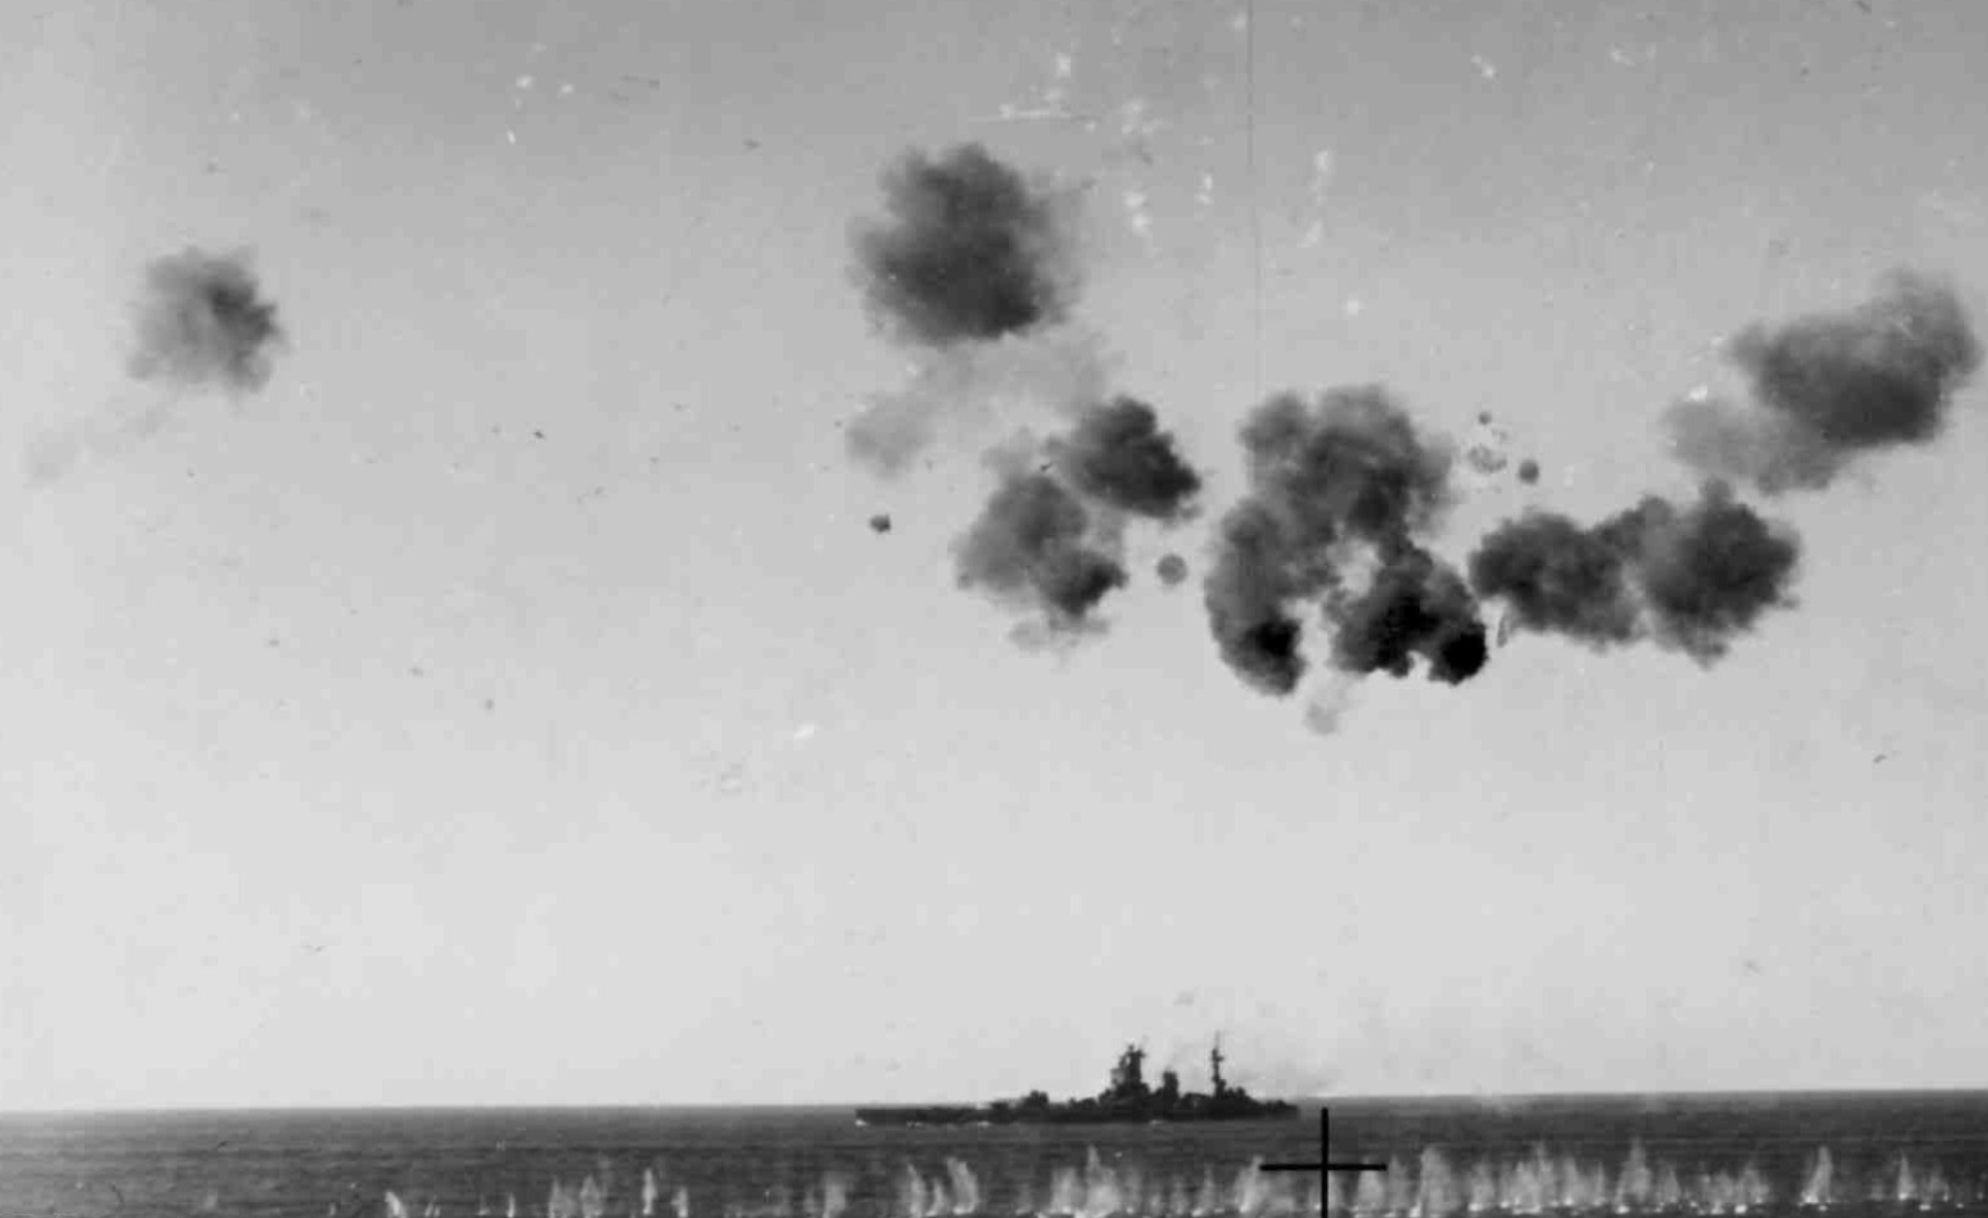 12 August: Air Attacks: HMS NELSON during the air battles on 12 August 1942.